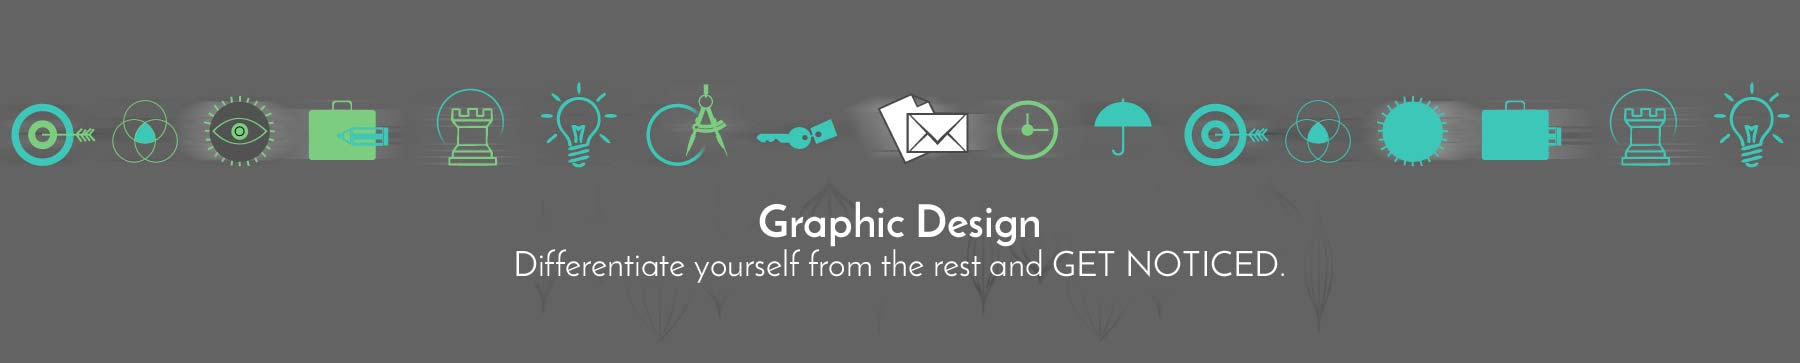 Fort lauderdale Web, Graphic Design Company